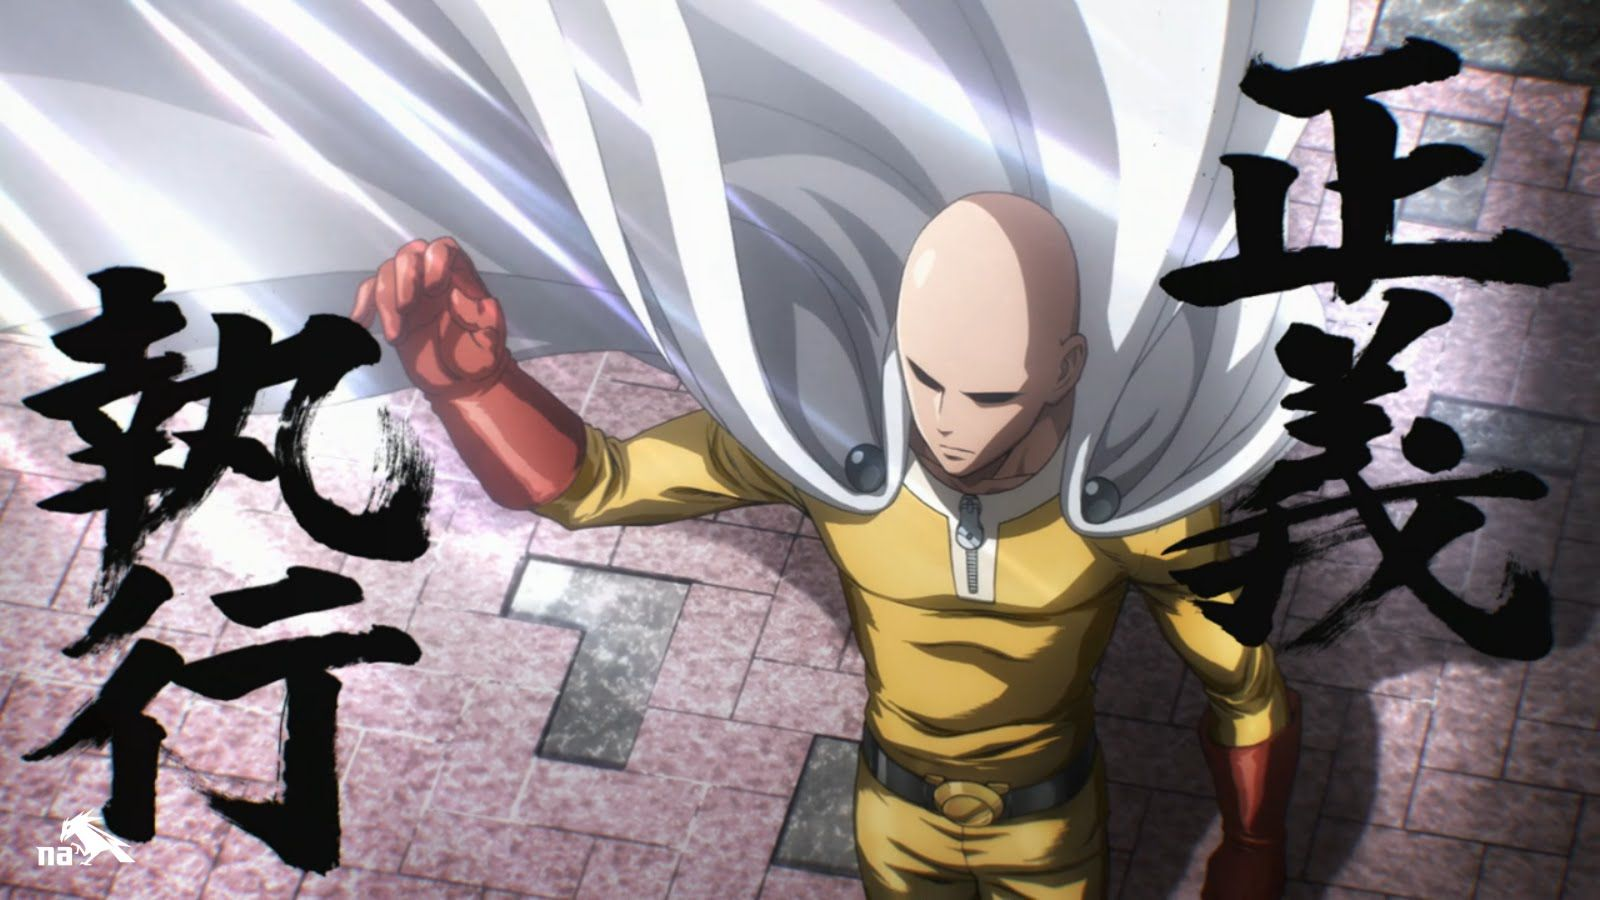 One Punch Man Wallpaper 4k Group 47 Download For Free One Punch Man Anime One Punch Man One Punch